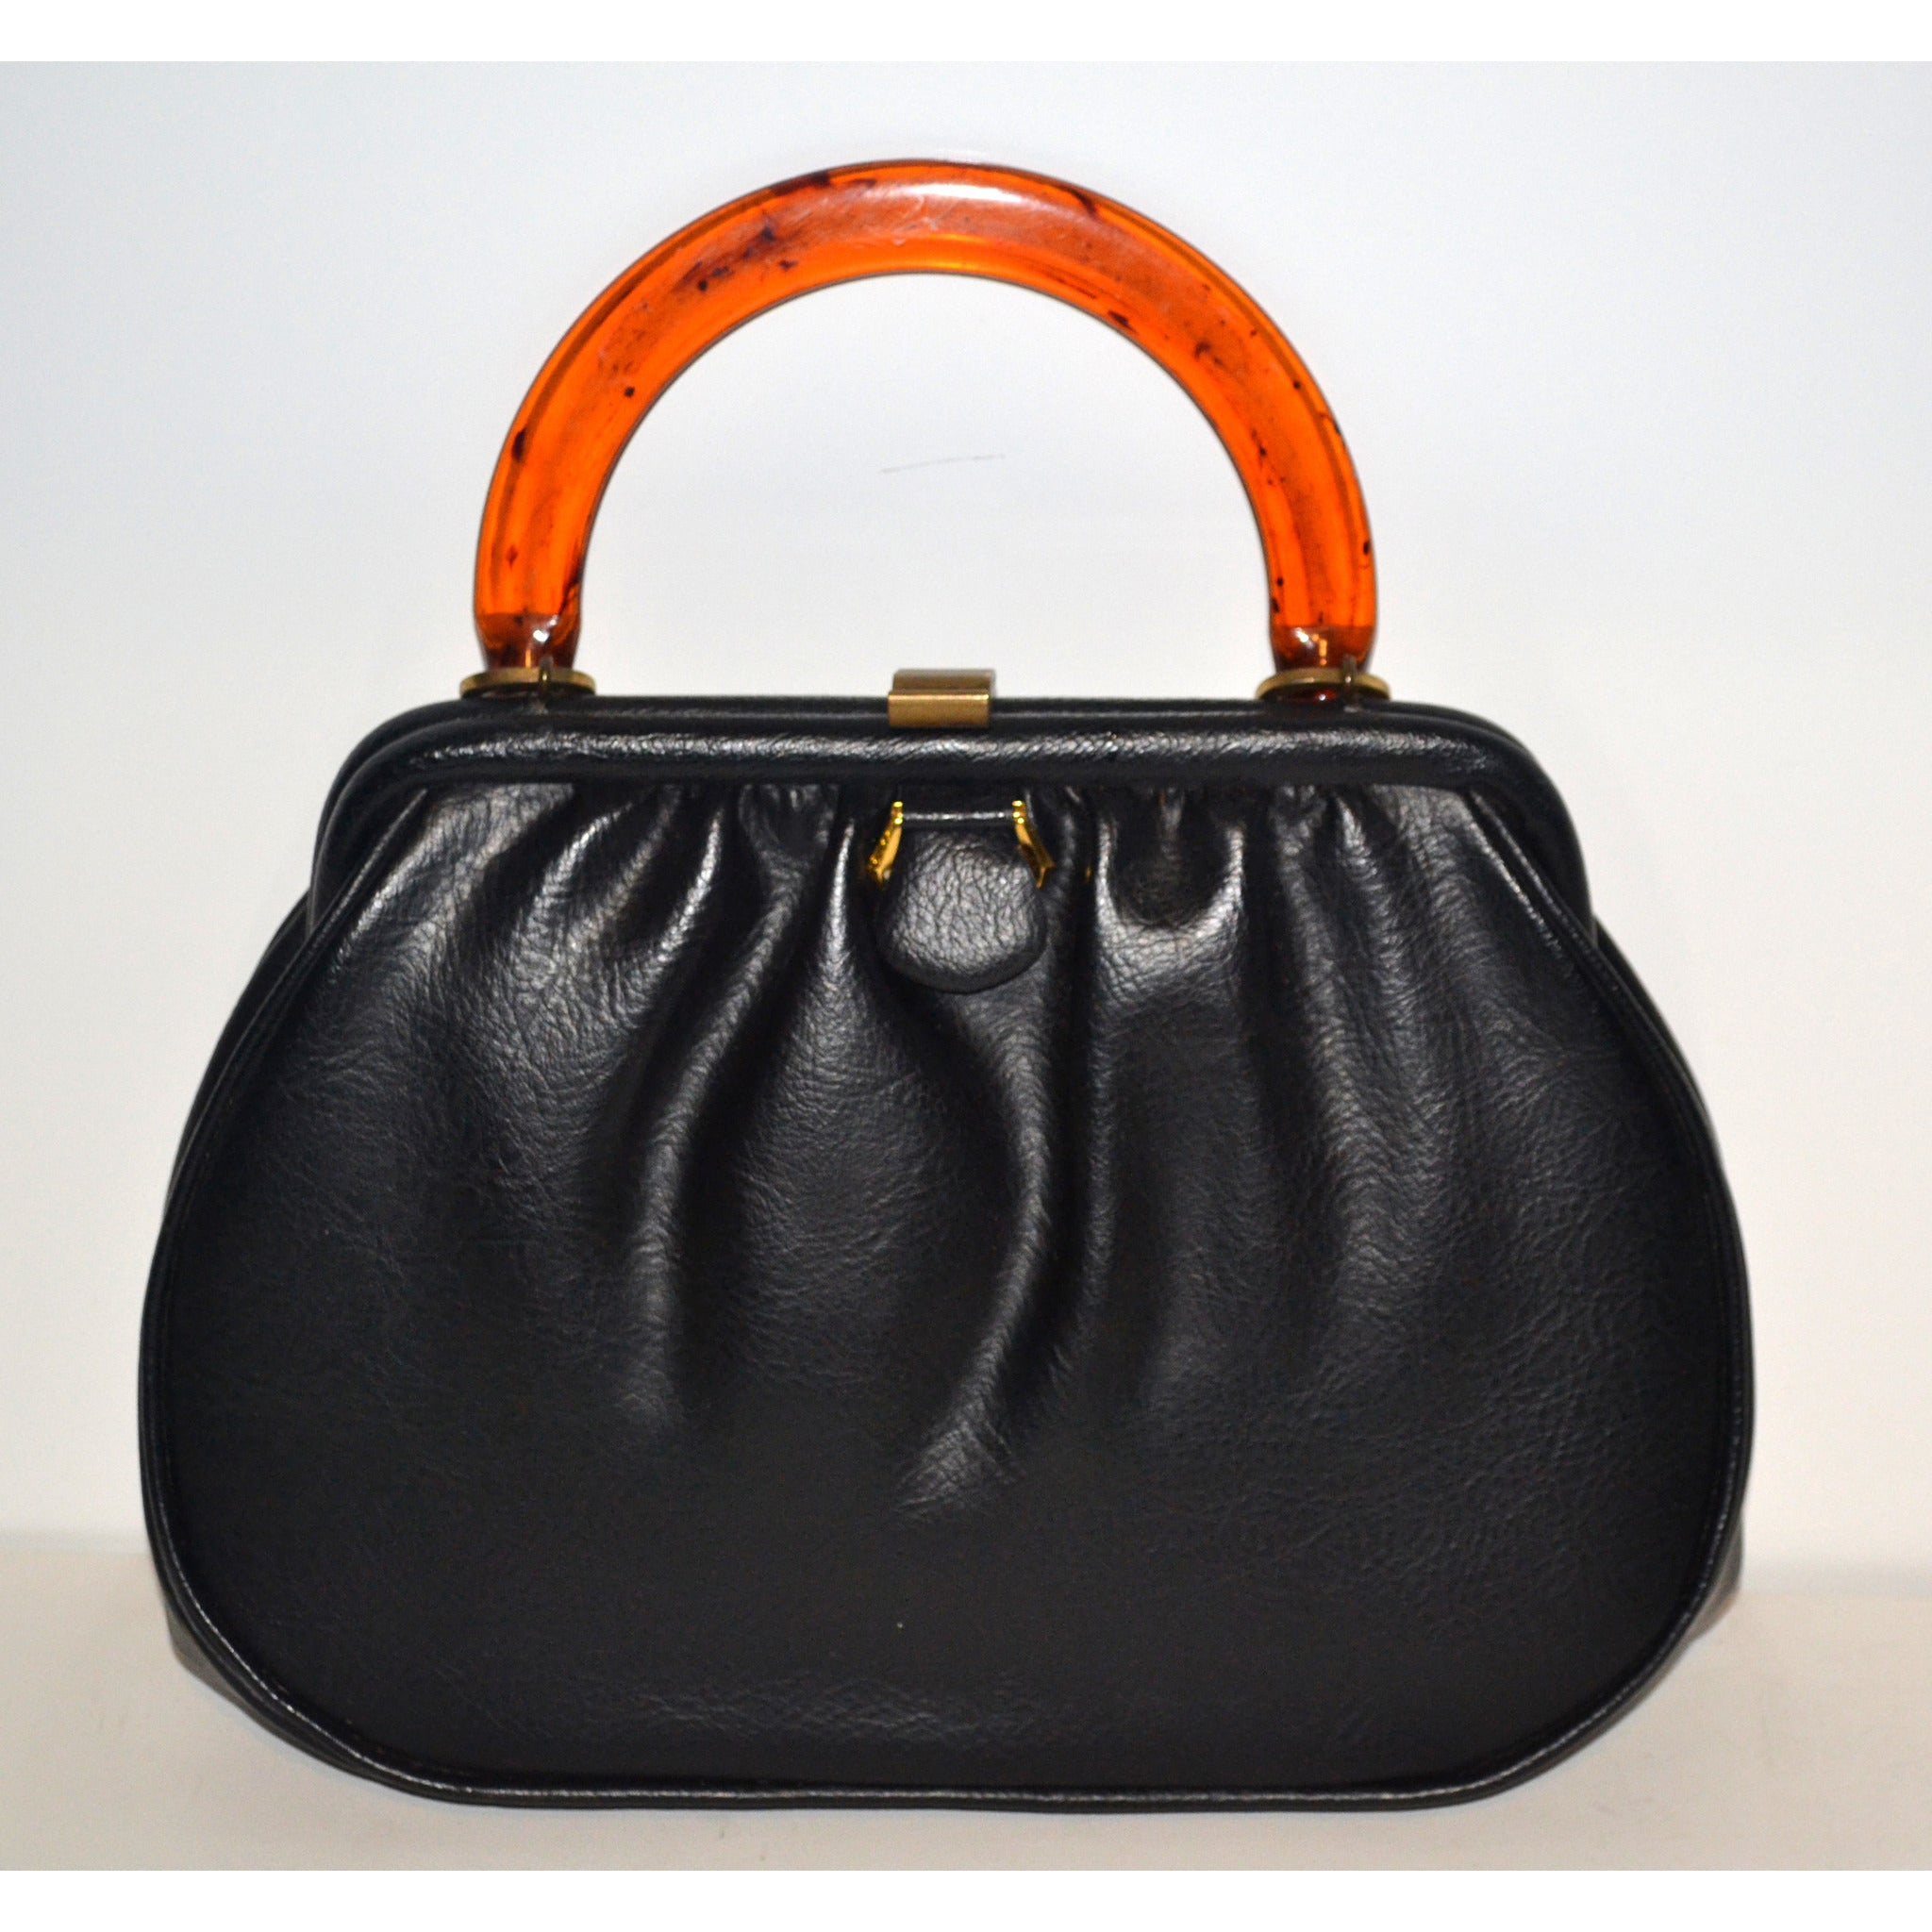 Vintage Black Leather & Tortoise Purse By Markay